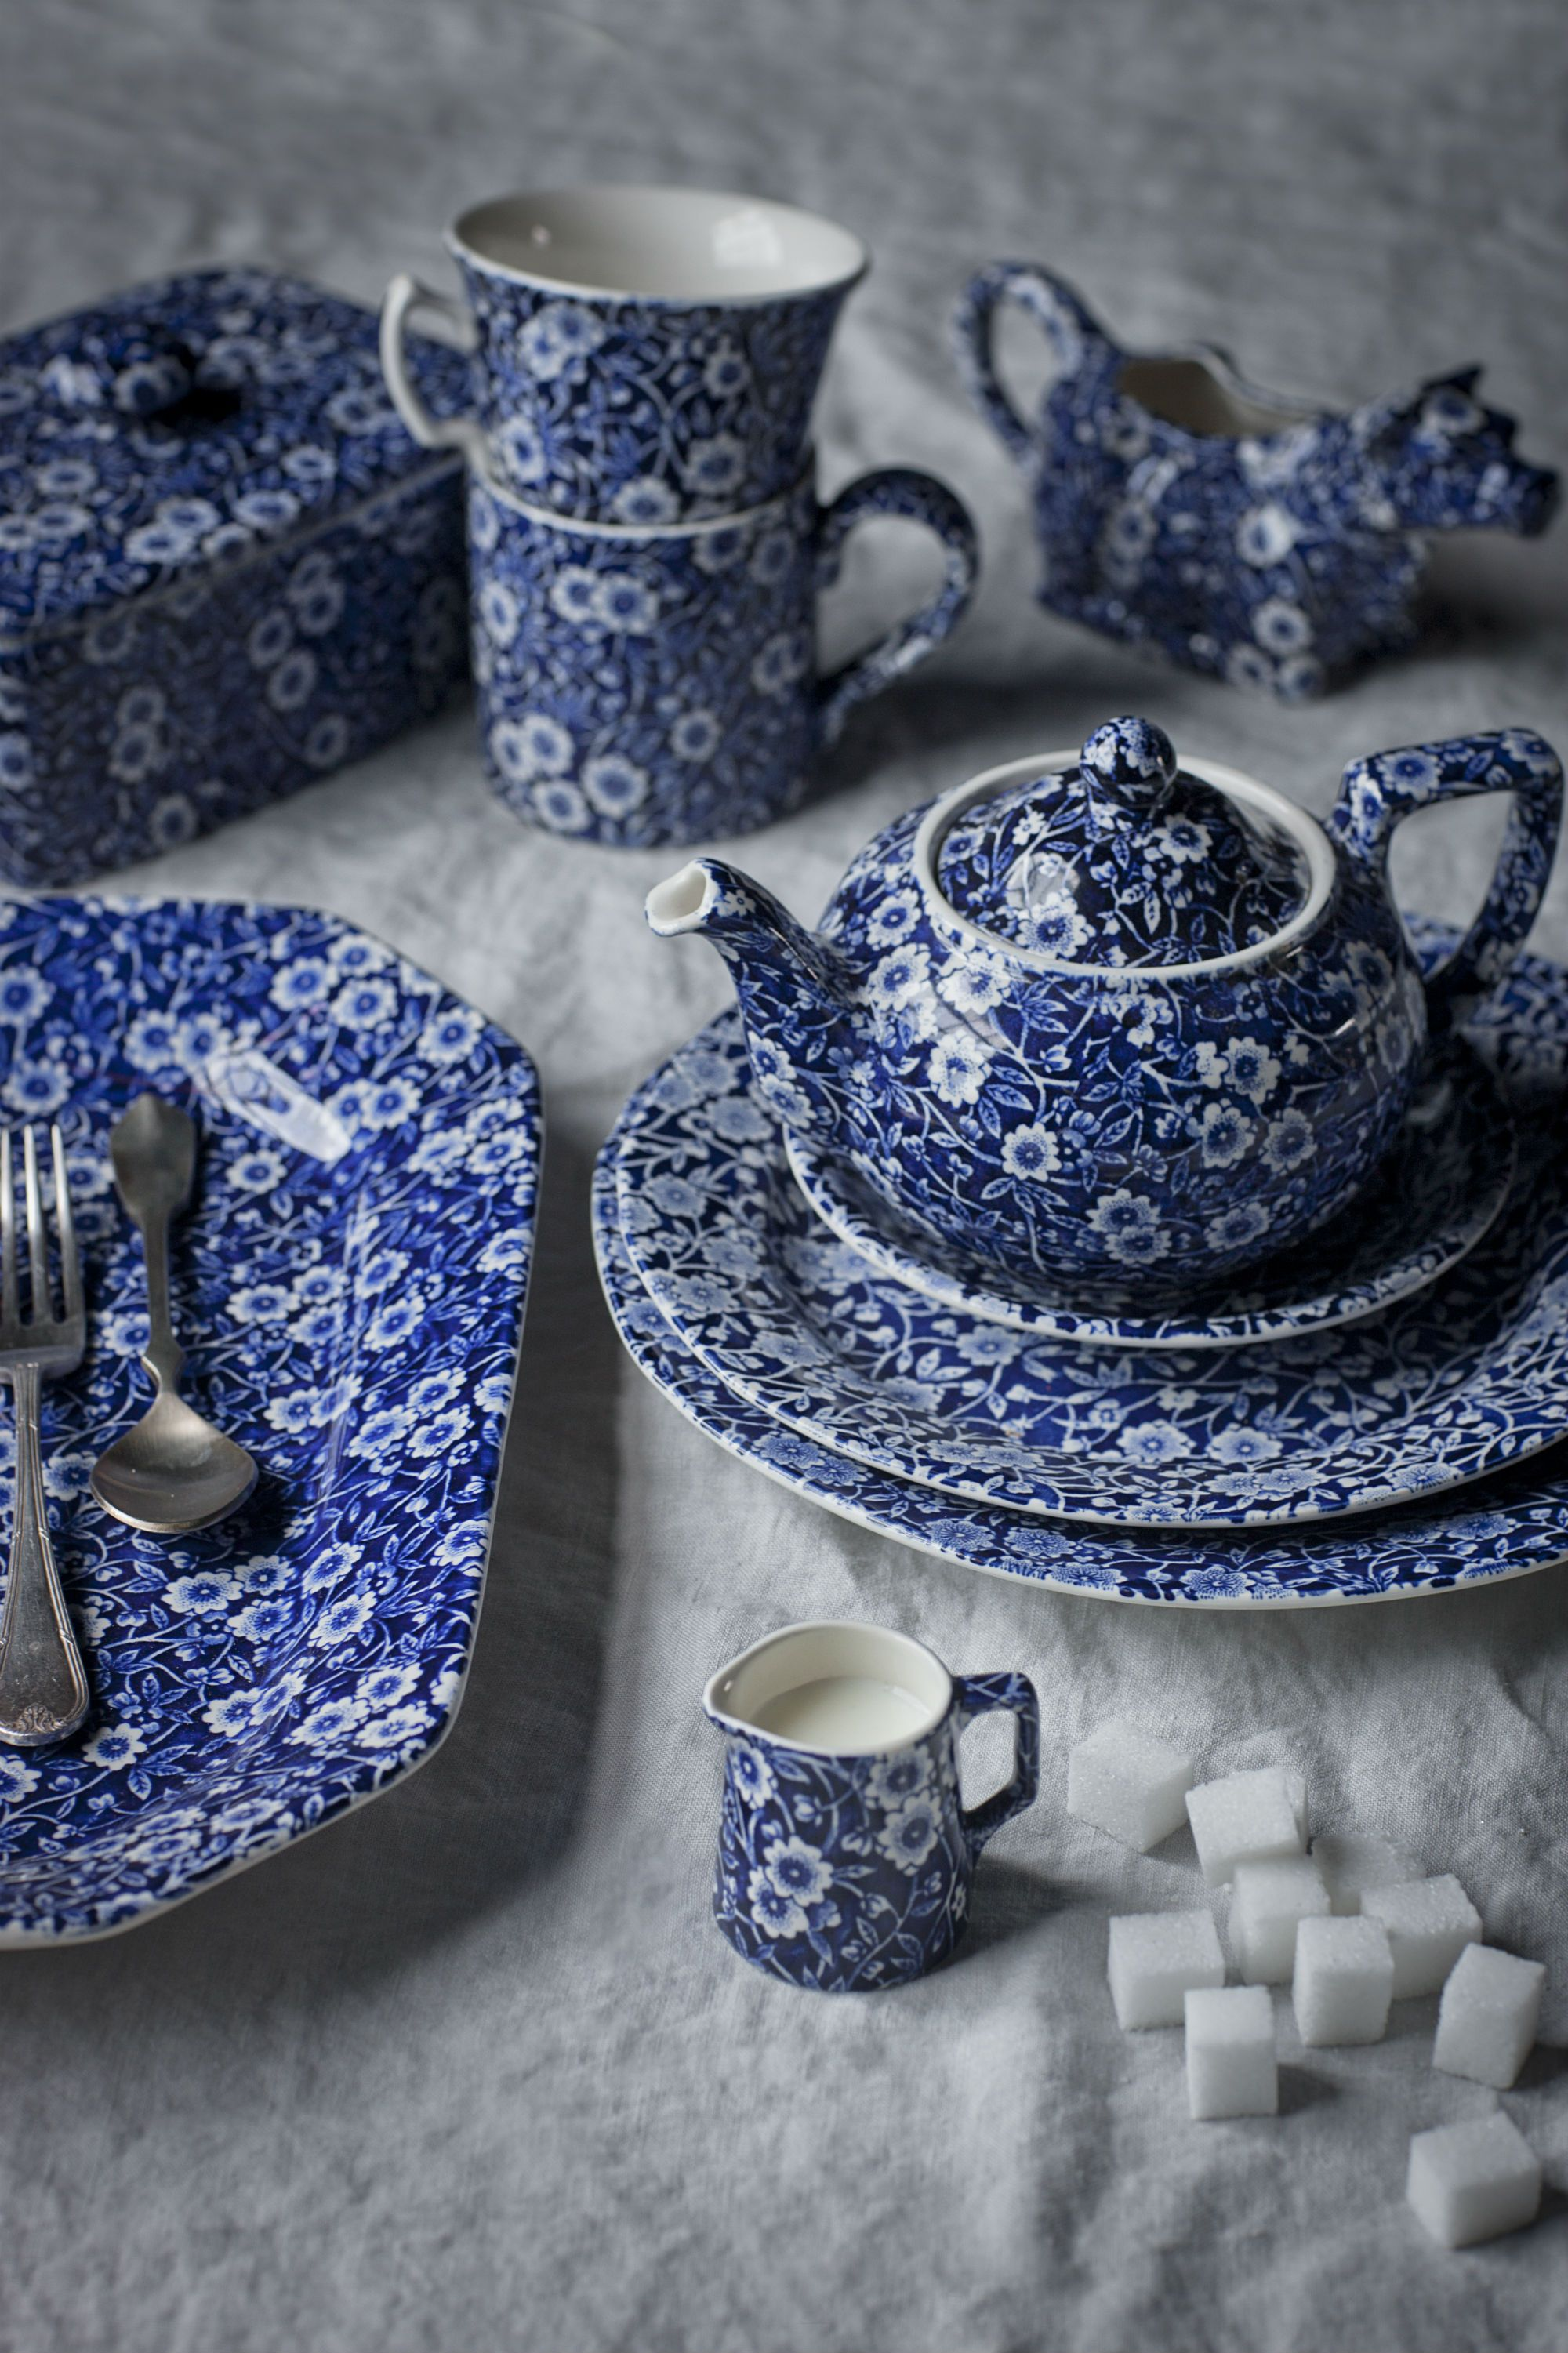 Burleigh English Tableware Are Truly Iconic With Their Rich Heritage Find A Classic Calico Design To Adorn You Blue And White China Blue Dishes Blue And White